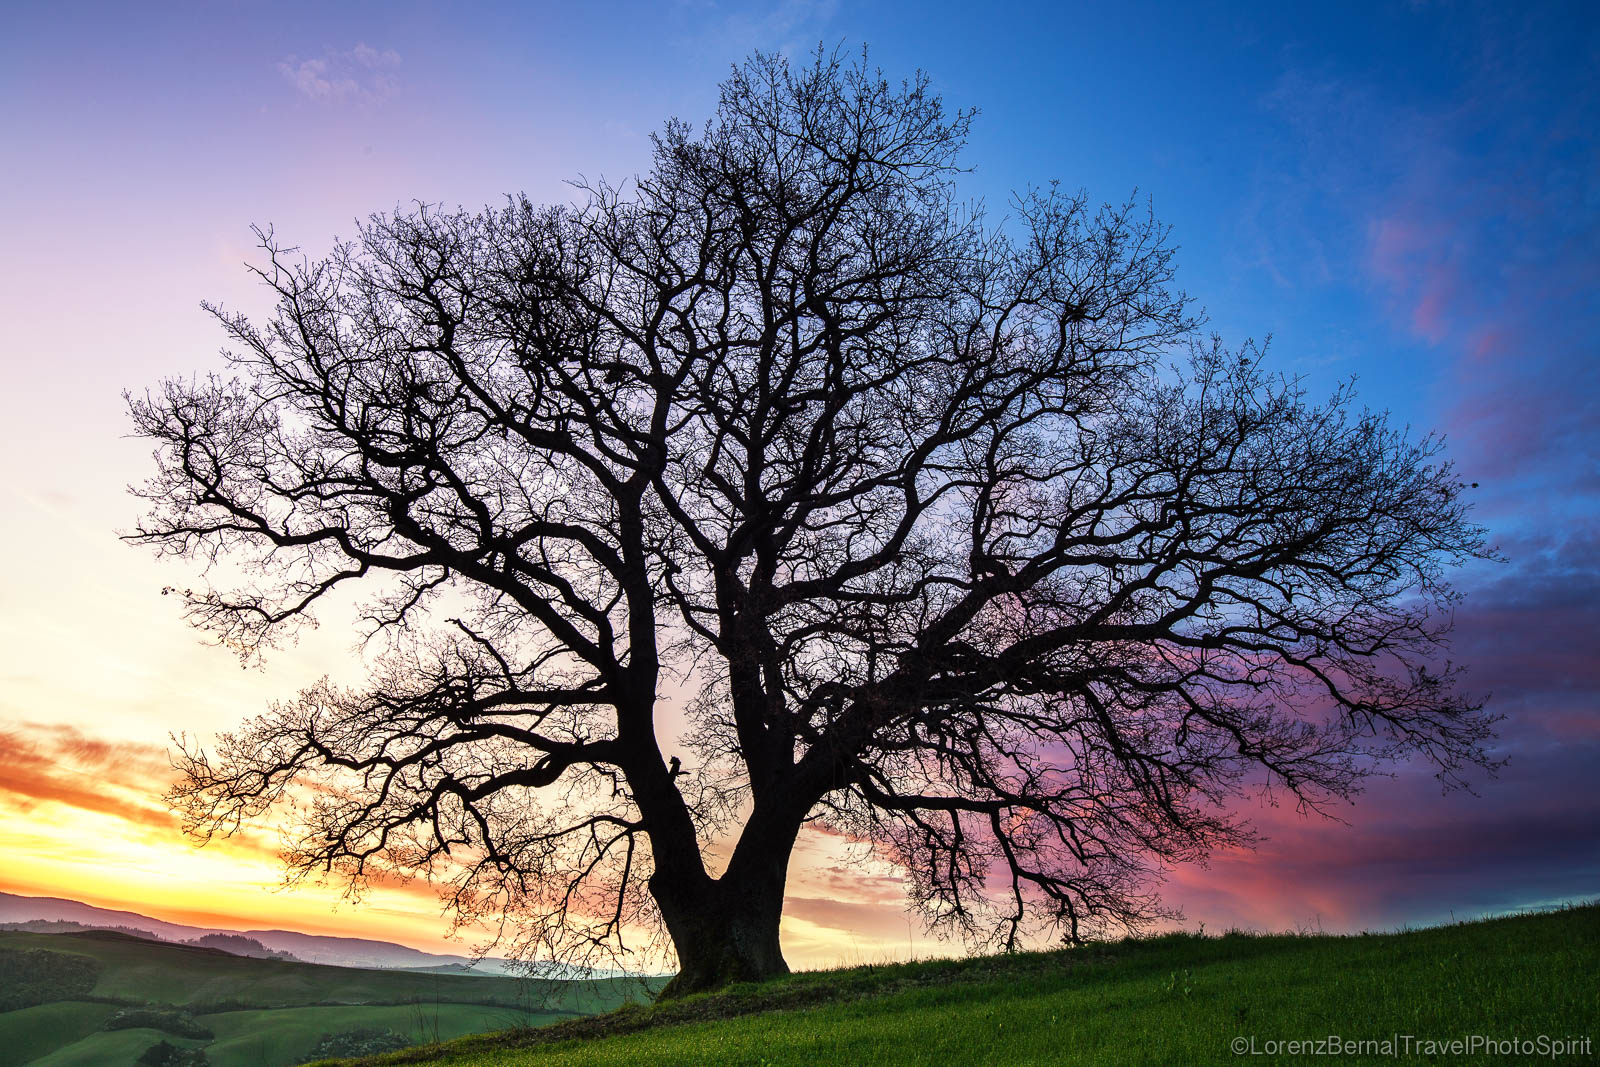 Majestic Oak Tree of a valley in the Crete Senesi - A Lorenz Berna Photography of Italy.